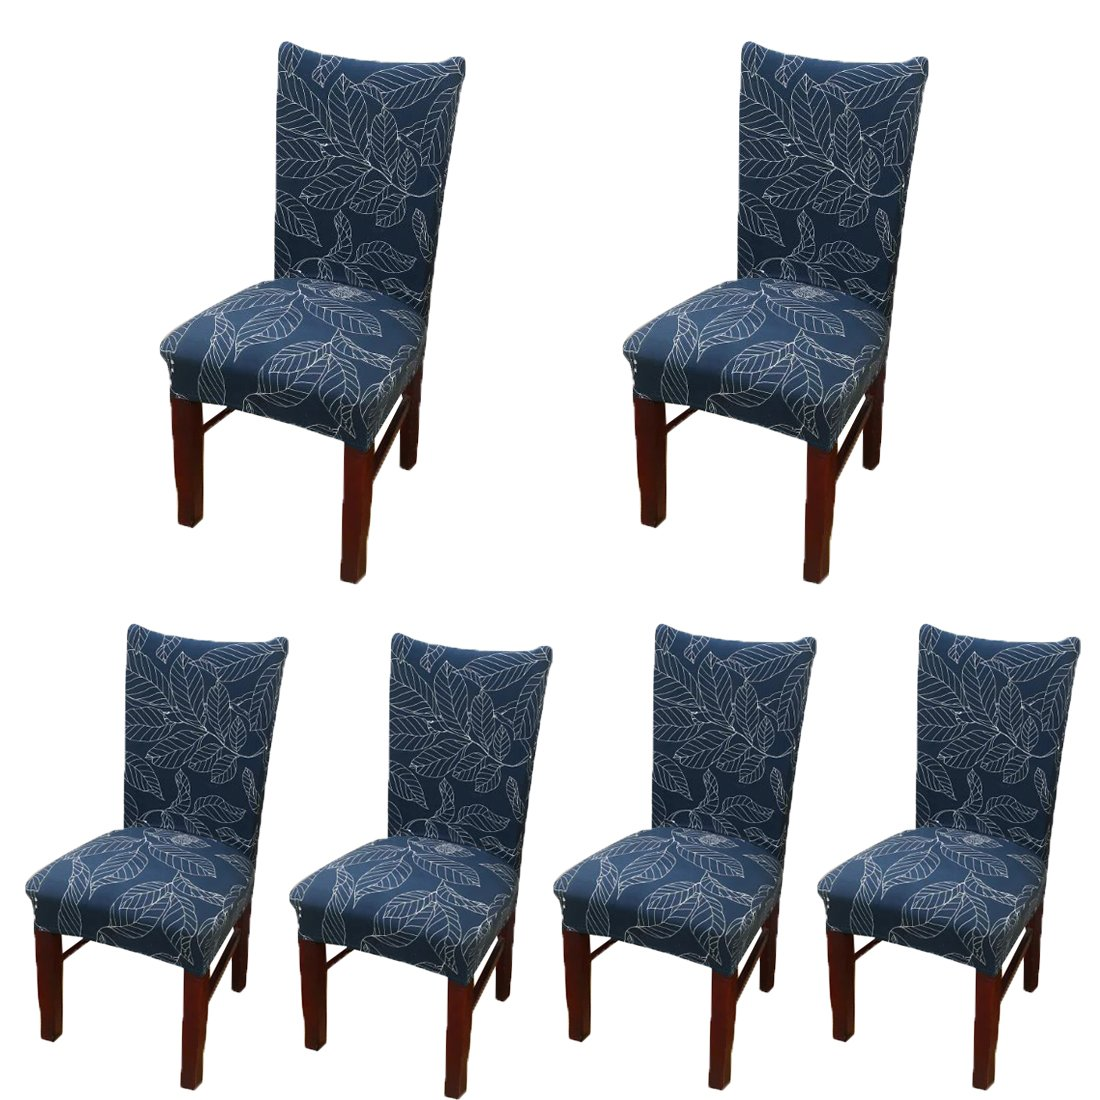 Deisy Dee Stretch Chair Cover Removable Washable for Hotel Dining Room Ceremony Chair Slipcovers Pack of 6 (QQ)